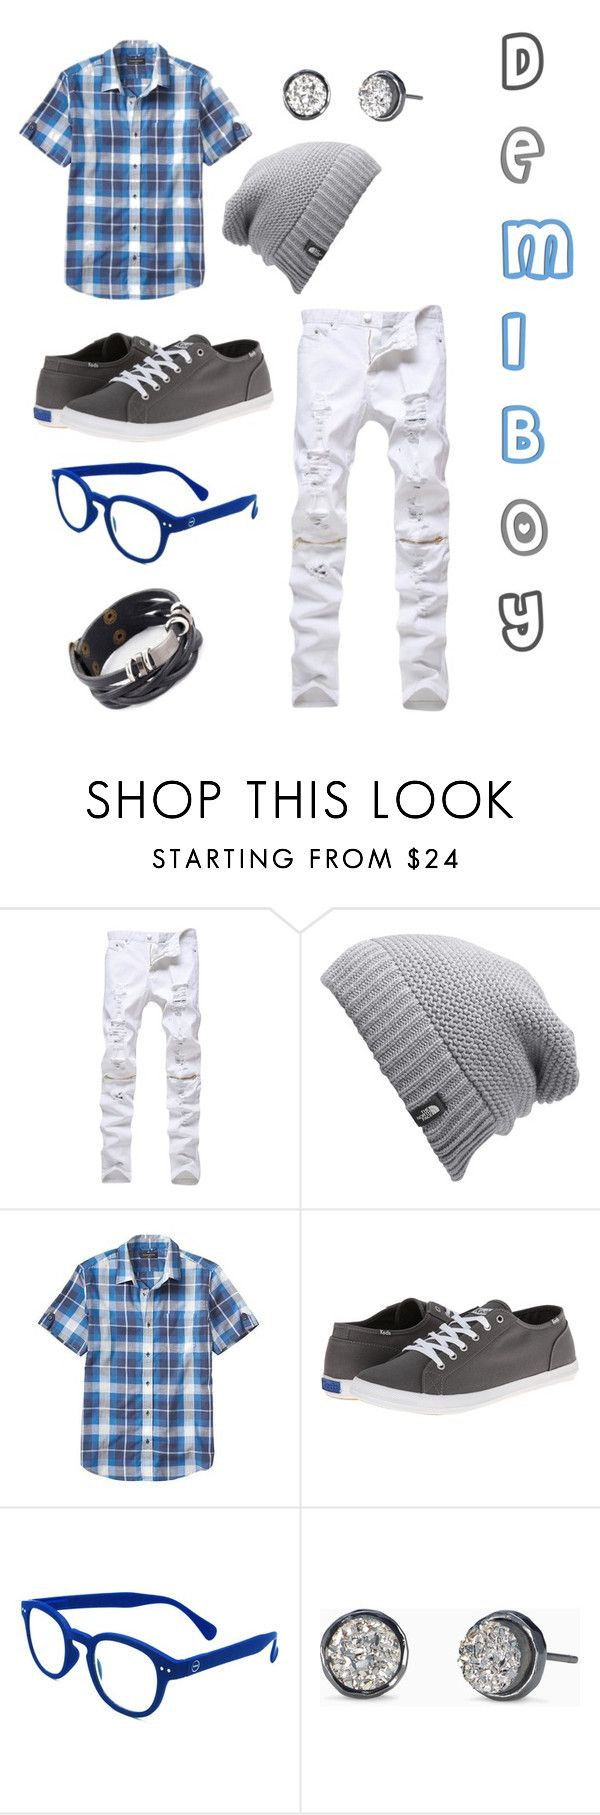 """Demiboy"" by nightskiesarebae on Polyvore featuring The North Face, Banana Republic, Keds, See Concept, Stella & Dot, men's fashion and menswear"